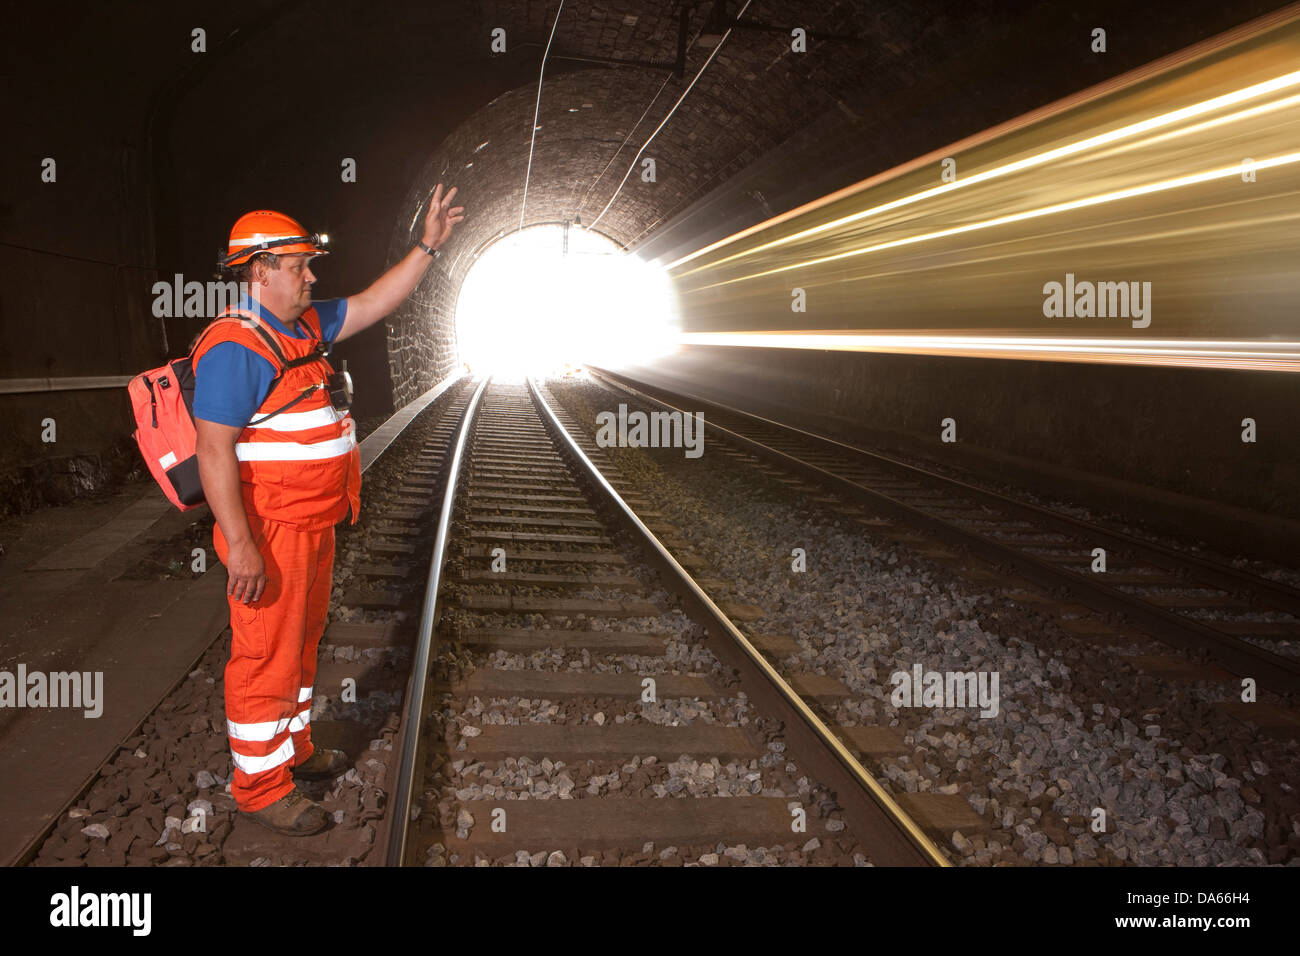 linesman, tunnel, road, railway, train, railroad, Lötschberg, BLS, Switzerland, Europe, security, safety, Bernese - Stock Image